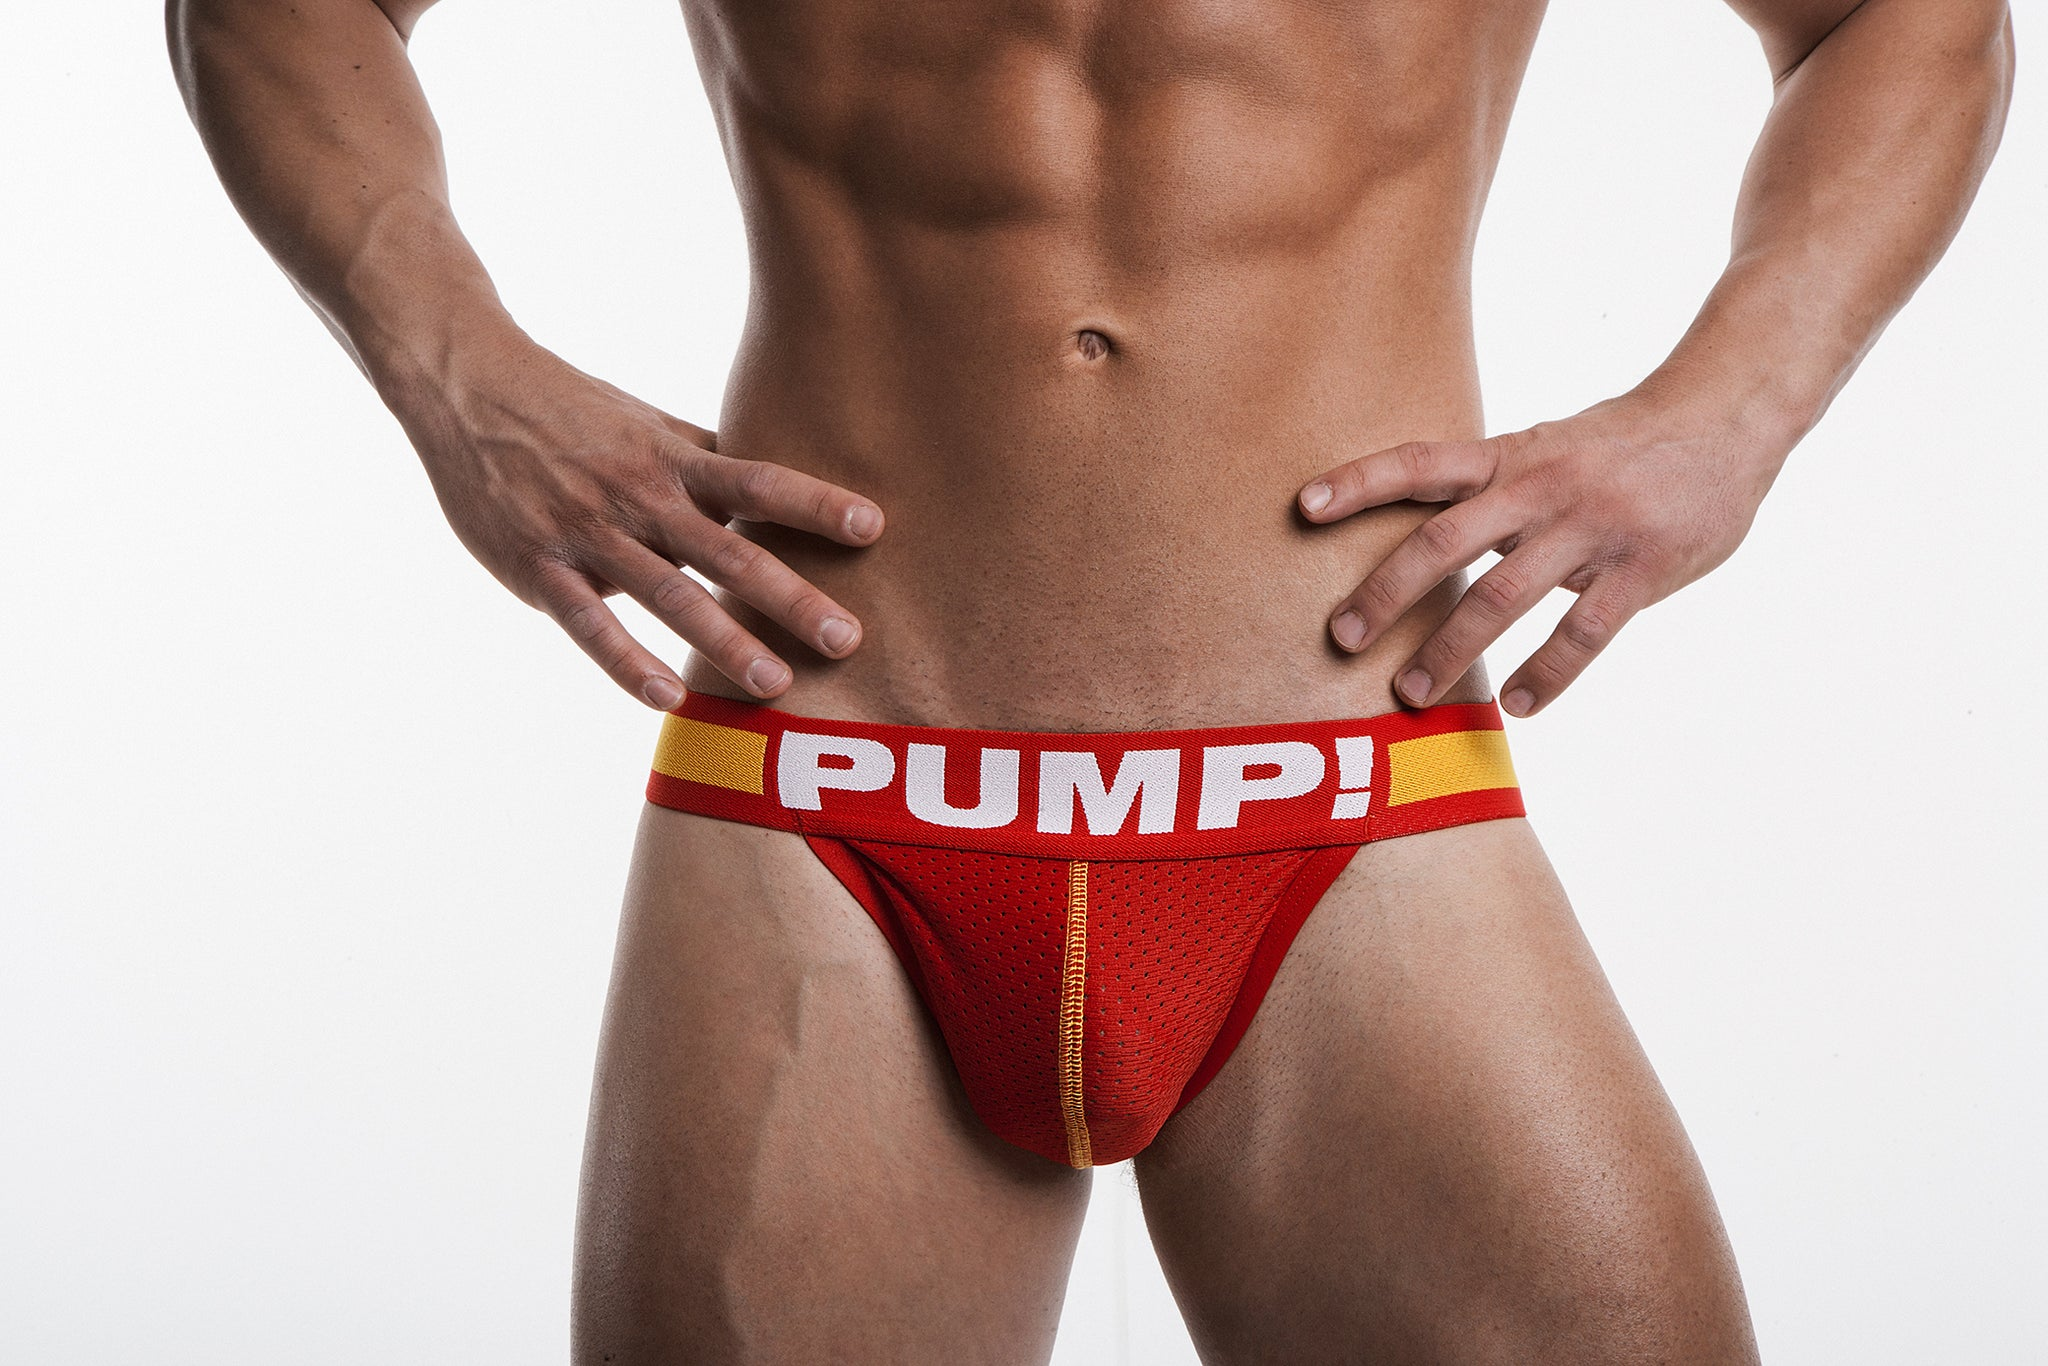 PUMP! FLASH Red JockStrap